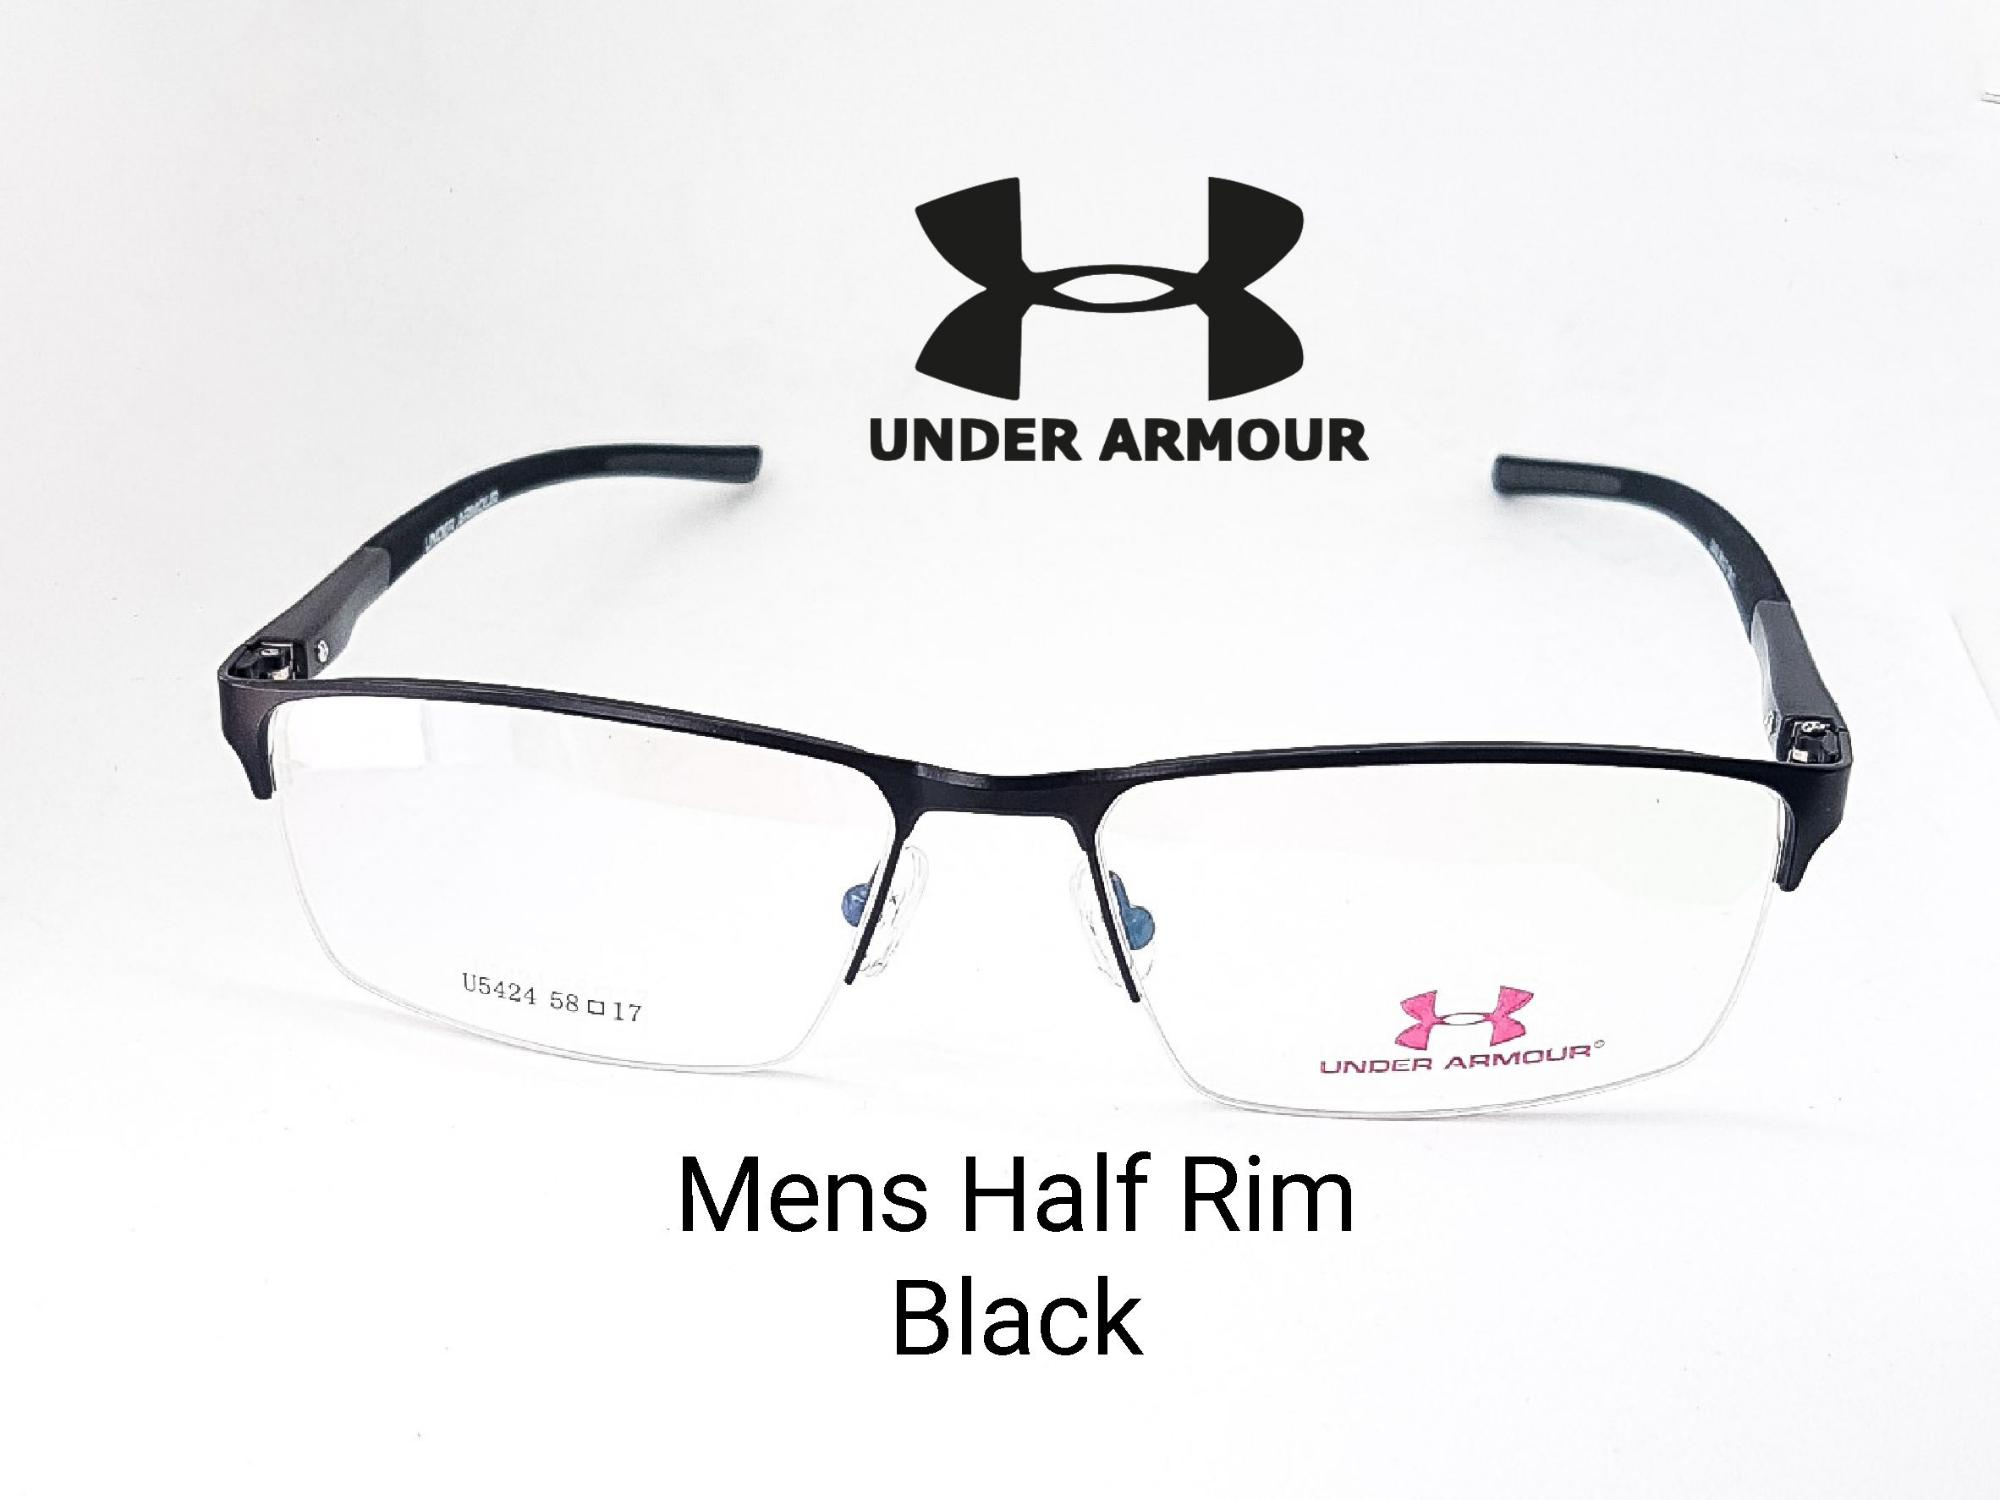 b7d0b56ae71 Mens Fashion Glasses For Men. Under Armour Getaway. Under Armour Sunglasses  Prescription Sportrx